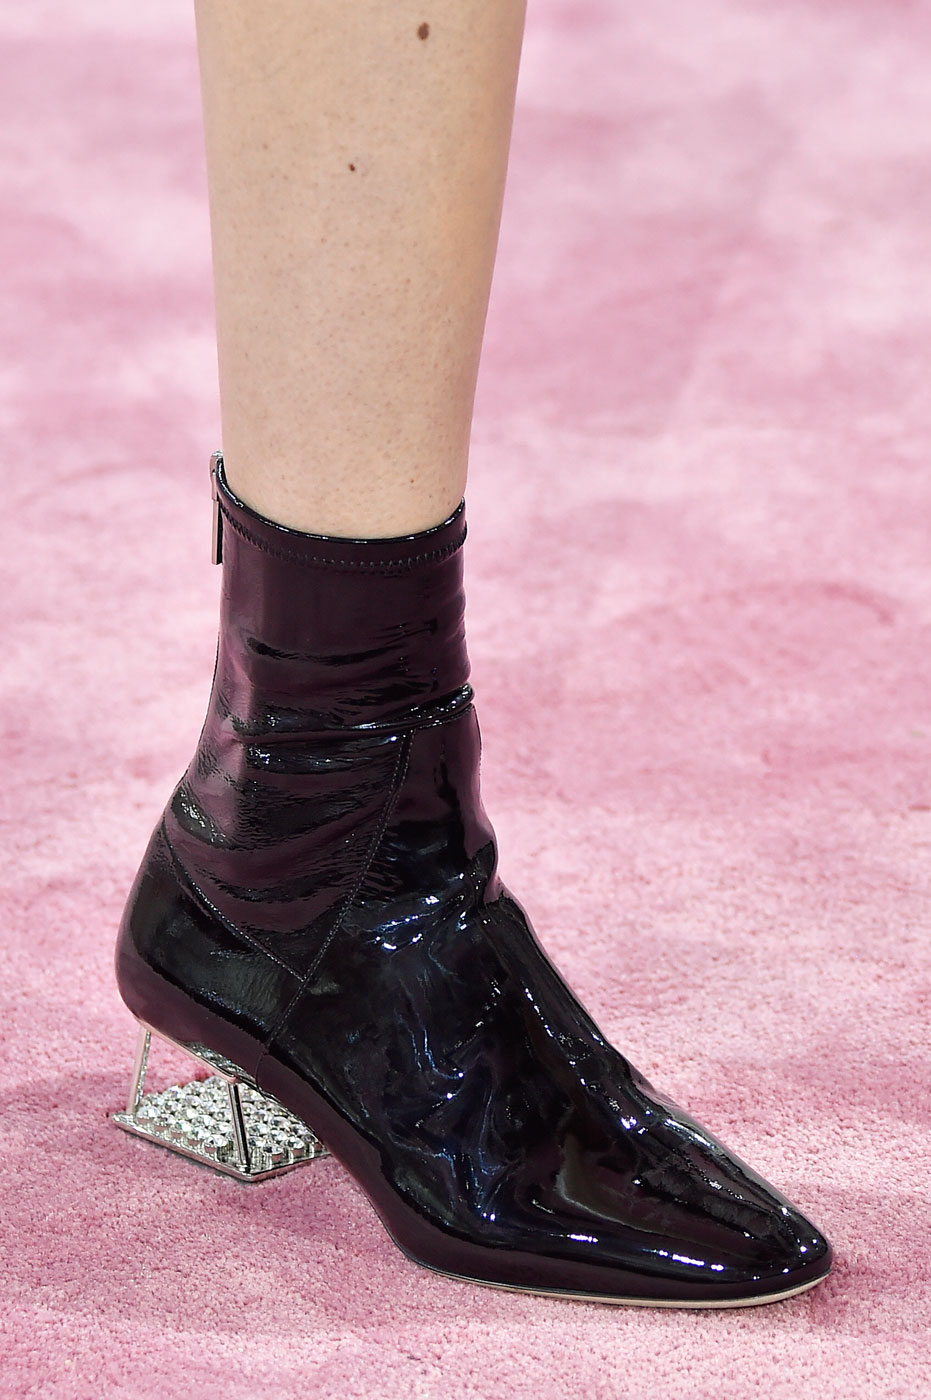 Christian-Dior-fashion-runway-show-close-ups-haute-couture-paris-spring-summer-2015-the-impression-083